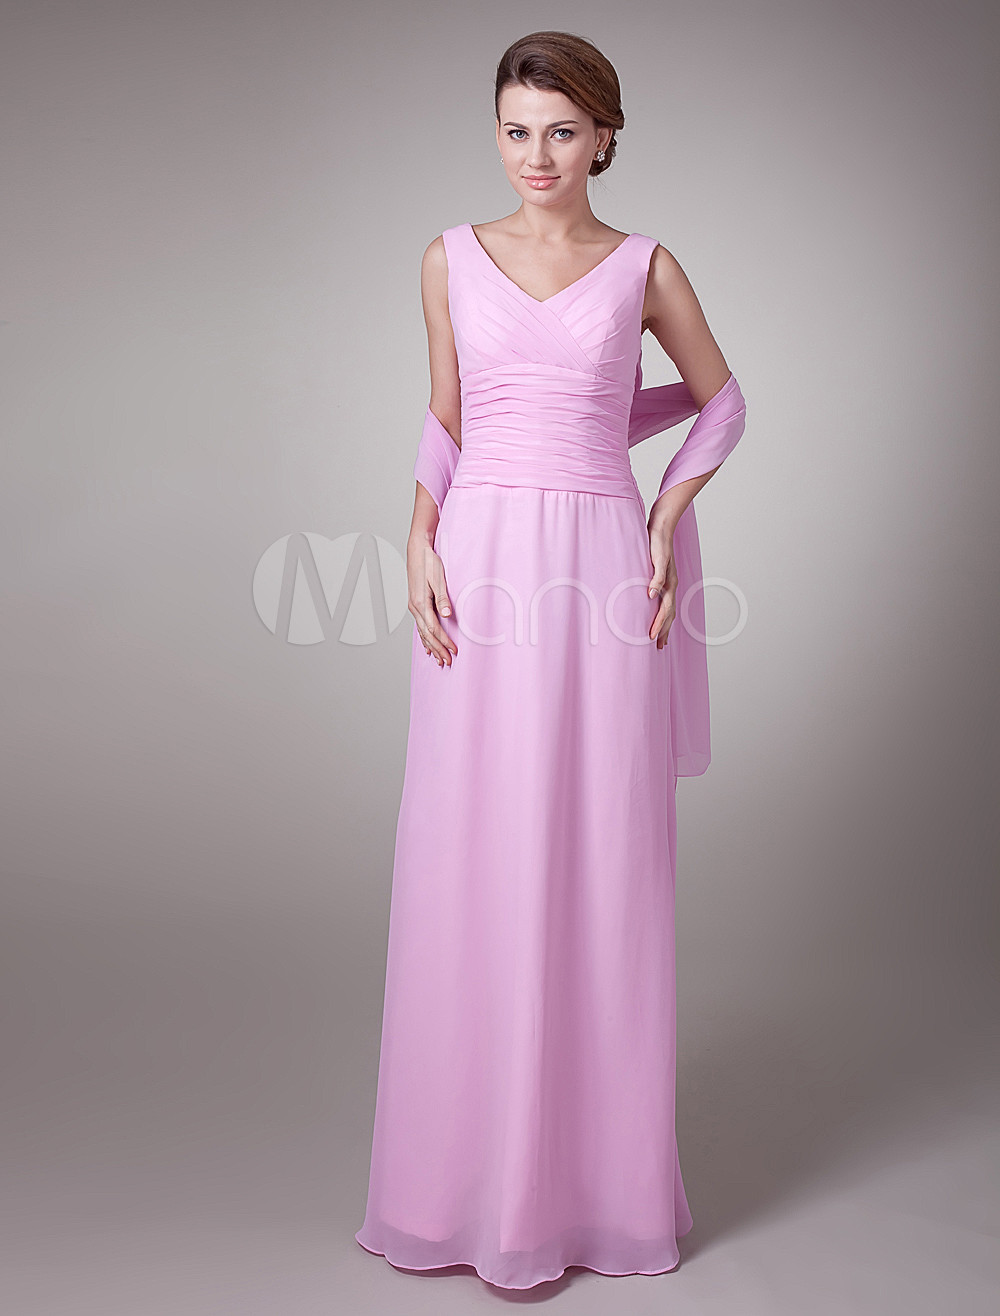 Sweet Pink Chiffon V-Neck A-Line Mother of The Bride Dress (Wedding) photo